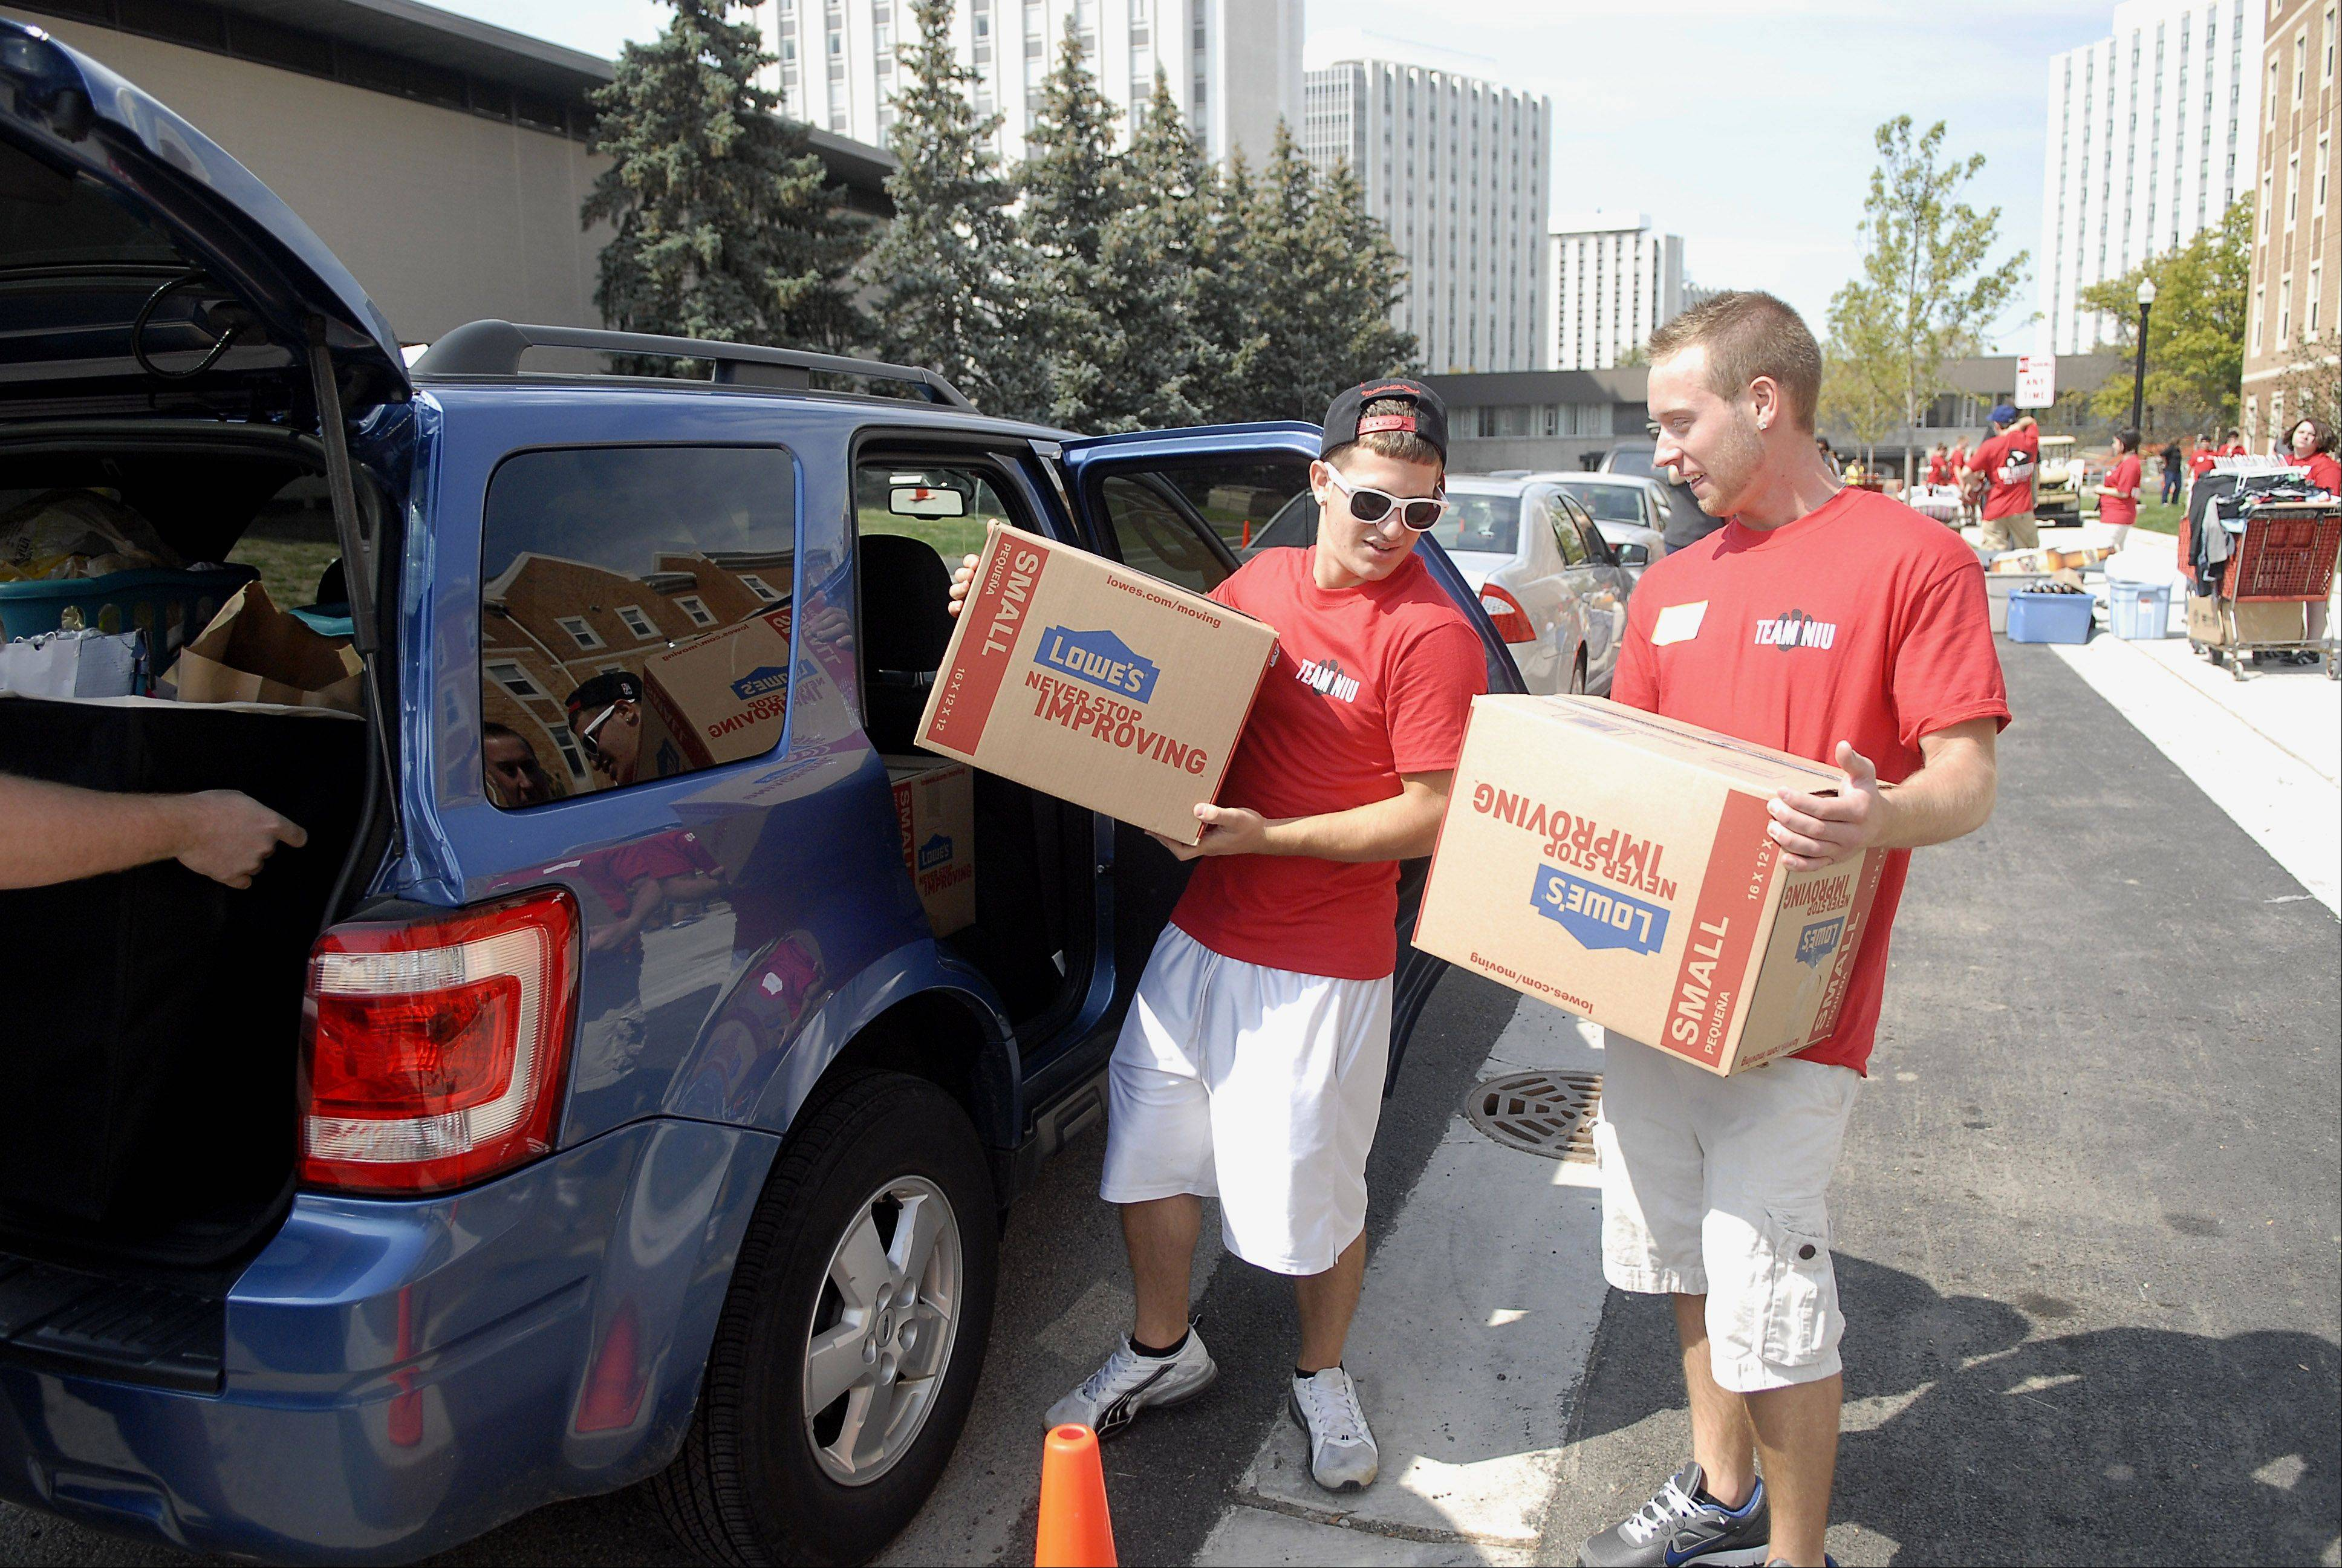 NIU sophomores Tony Lombardo of Algonquin, left, and Caleb Bardy of Zion help unload a car of belongings on move-in day at New Residence Hall East and West at Northern Illinois University in DeKalb on Thursday, August 23.